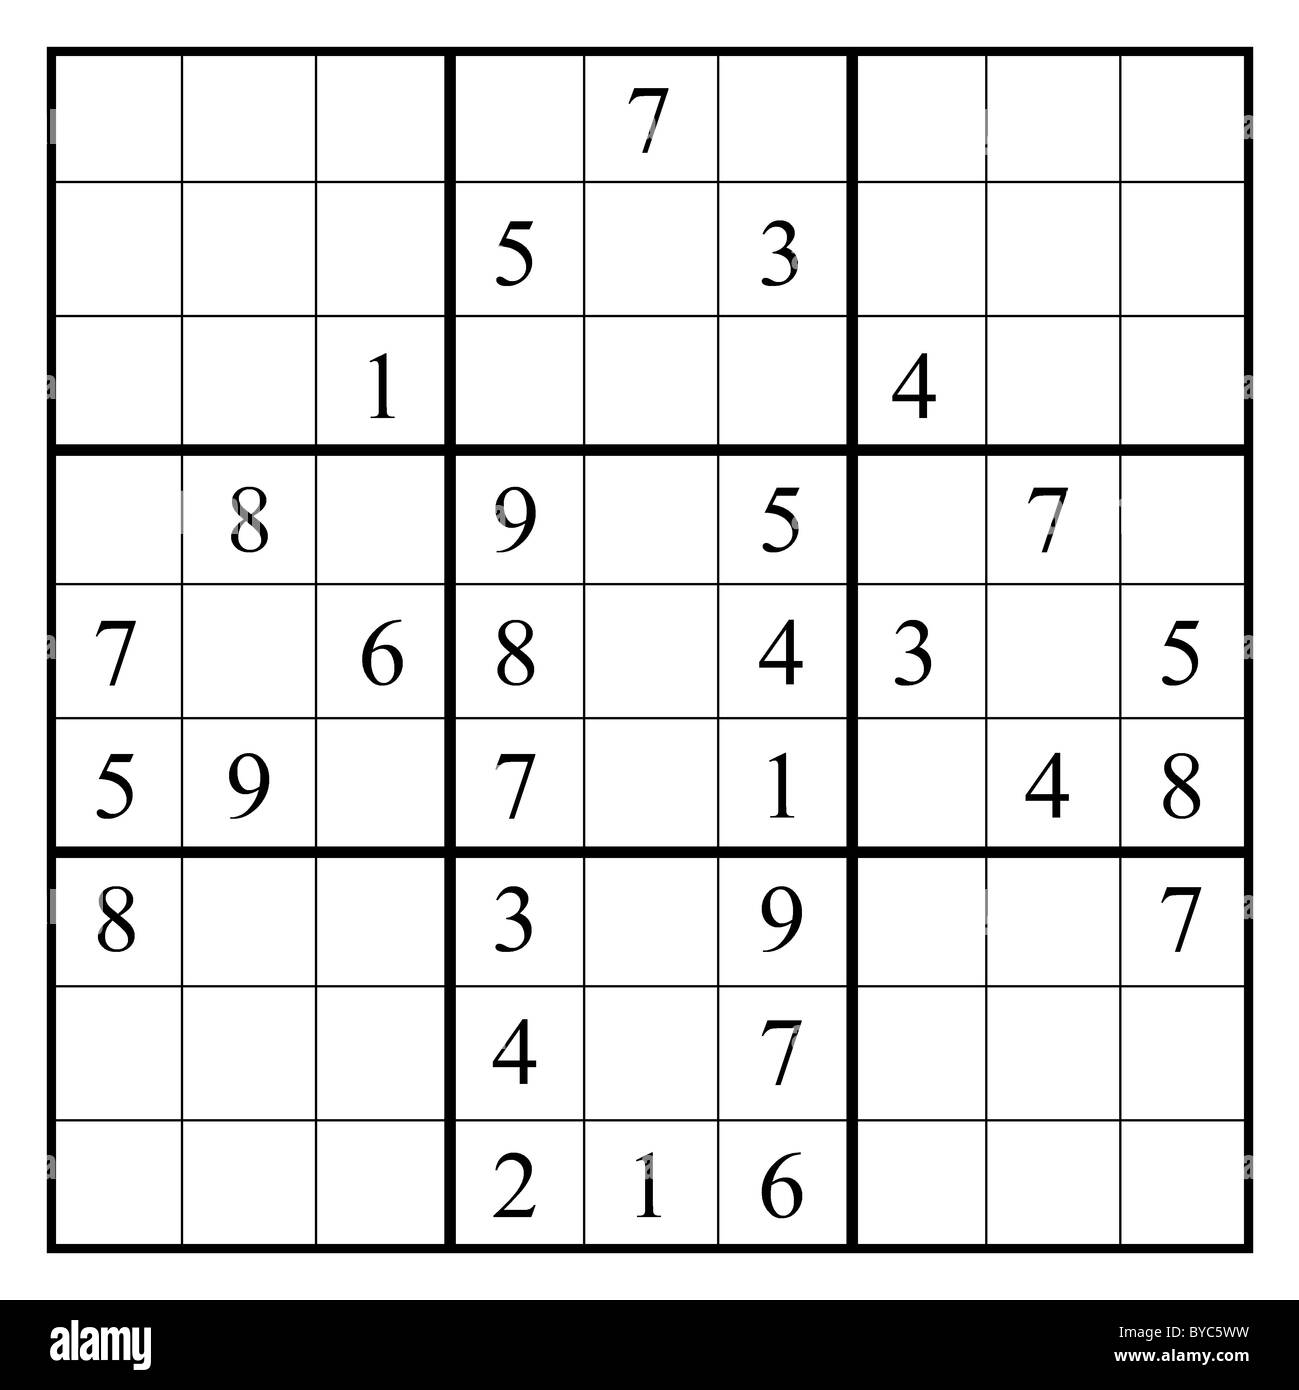 pointing with a sudoku puzzle this sudoku layout provides an upward